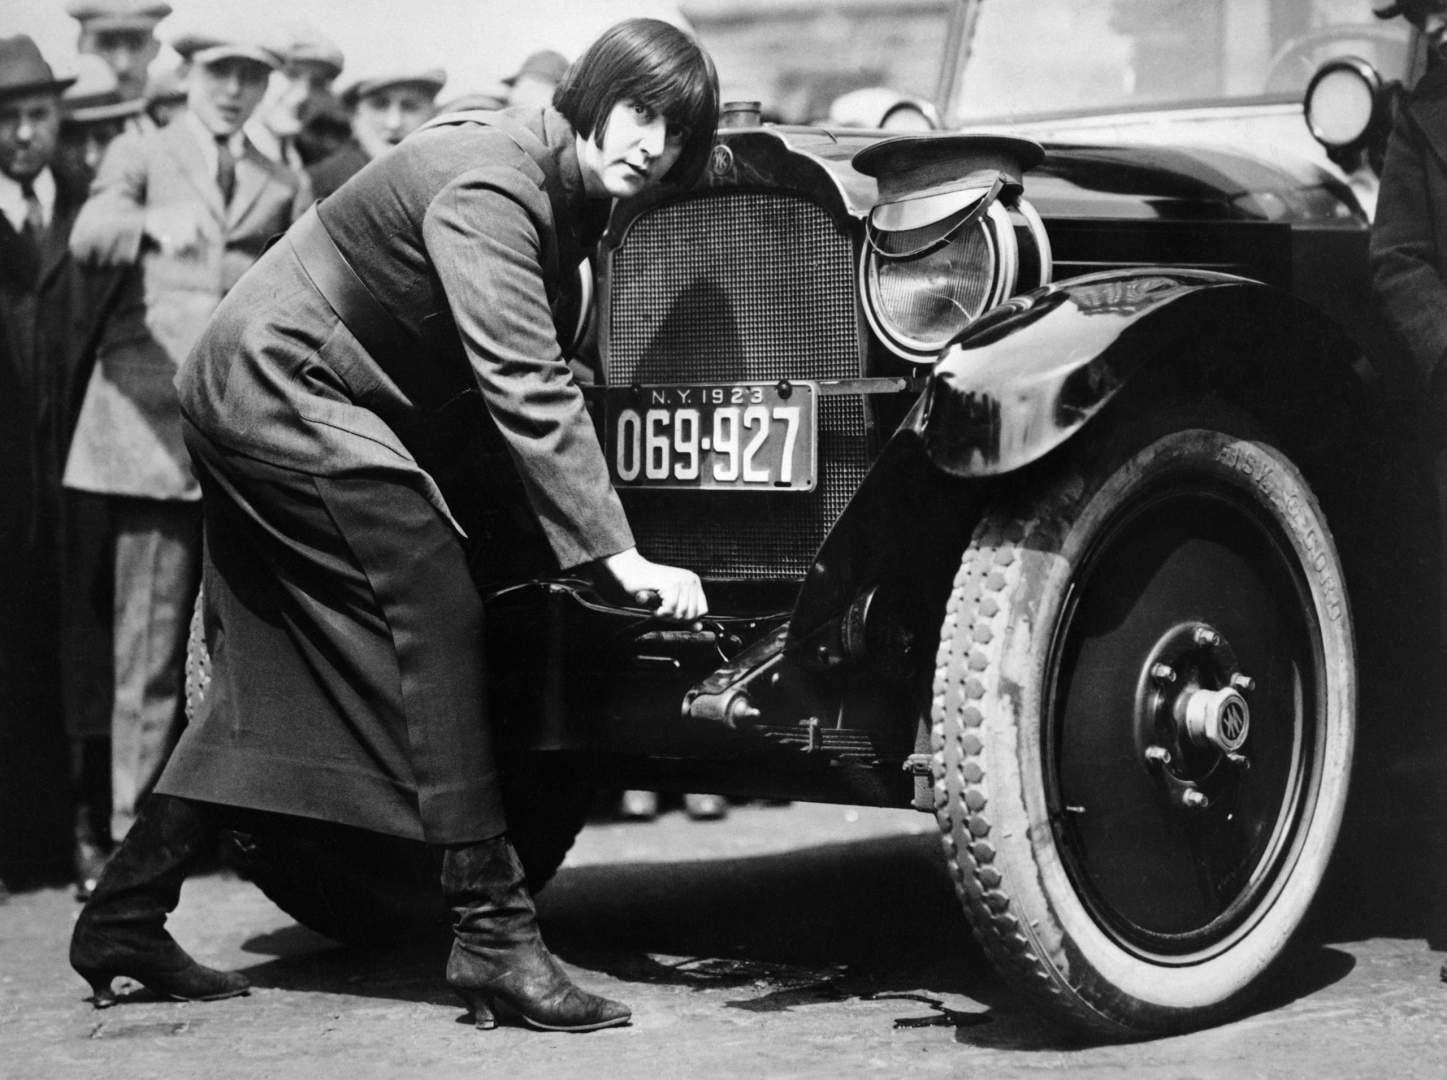 First Woman Taxi Driver in New York City